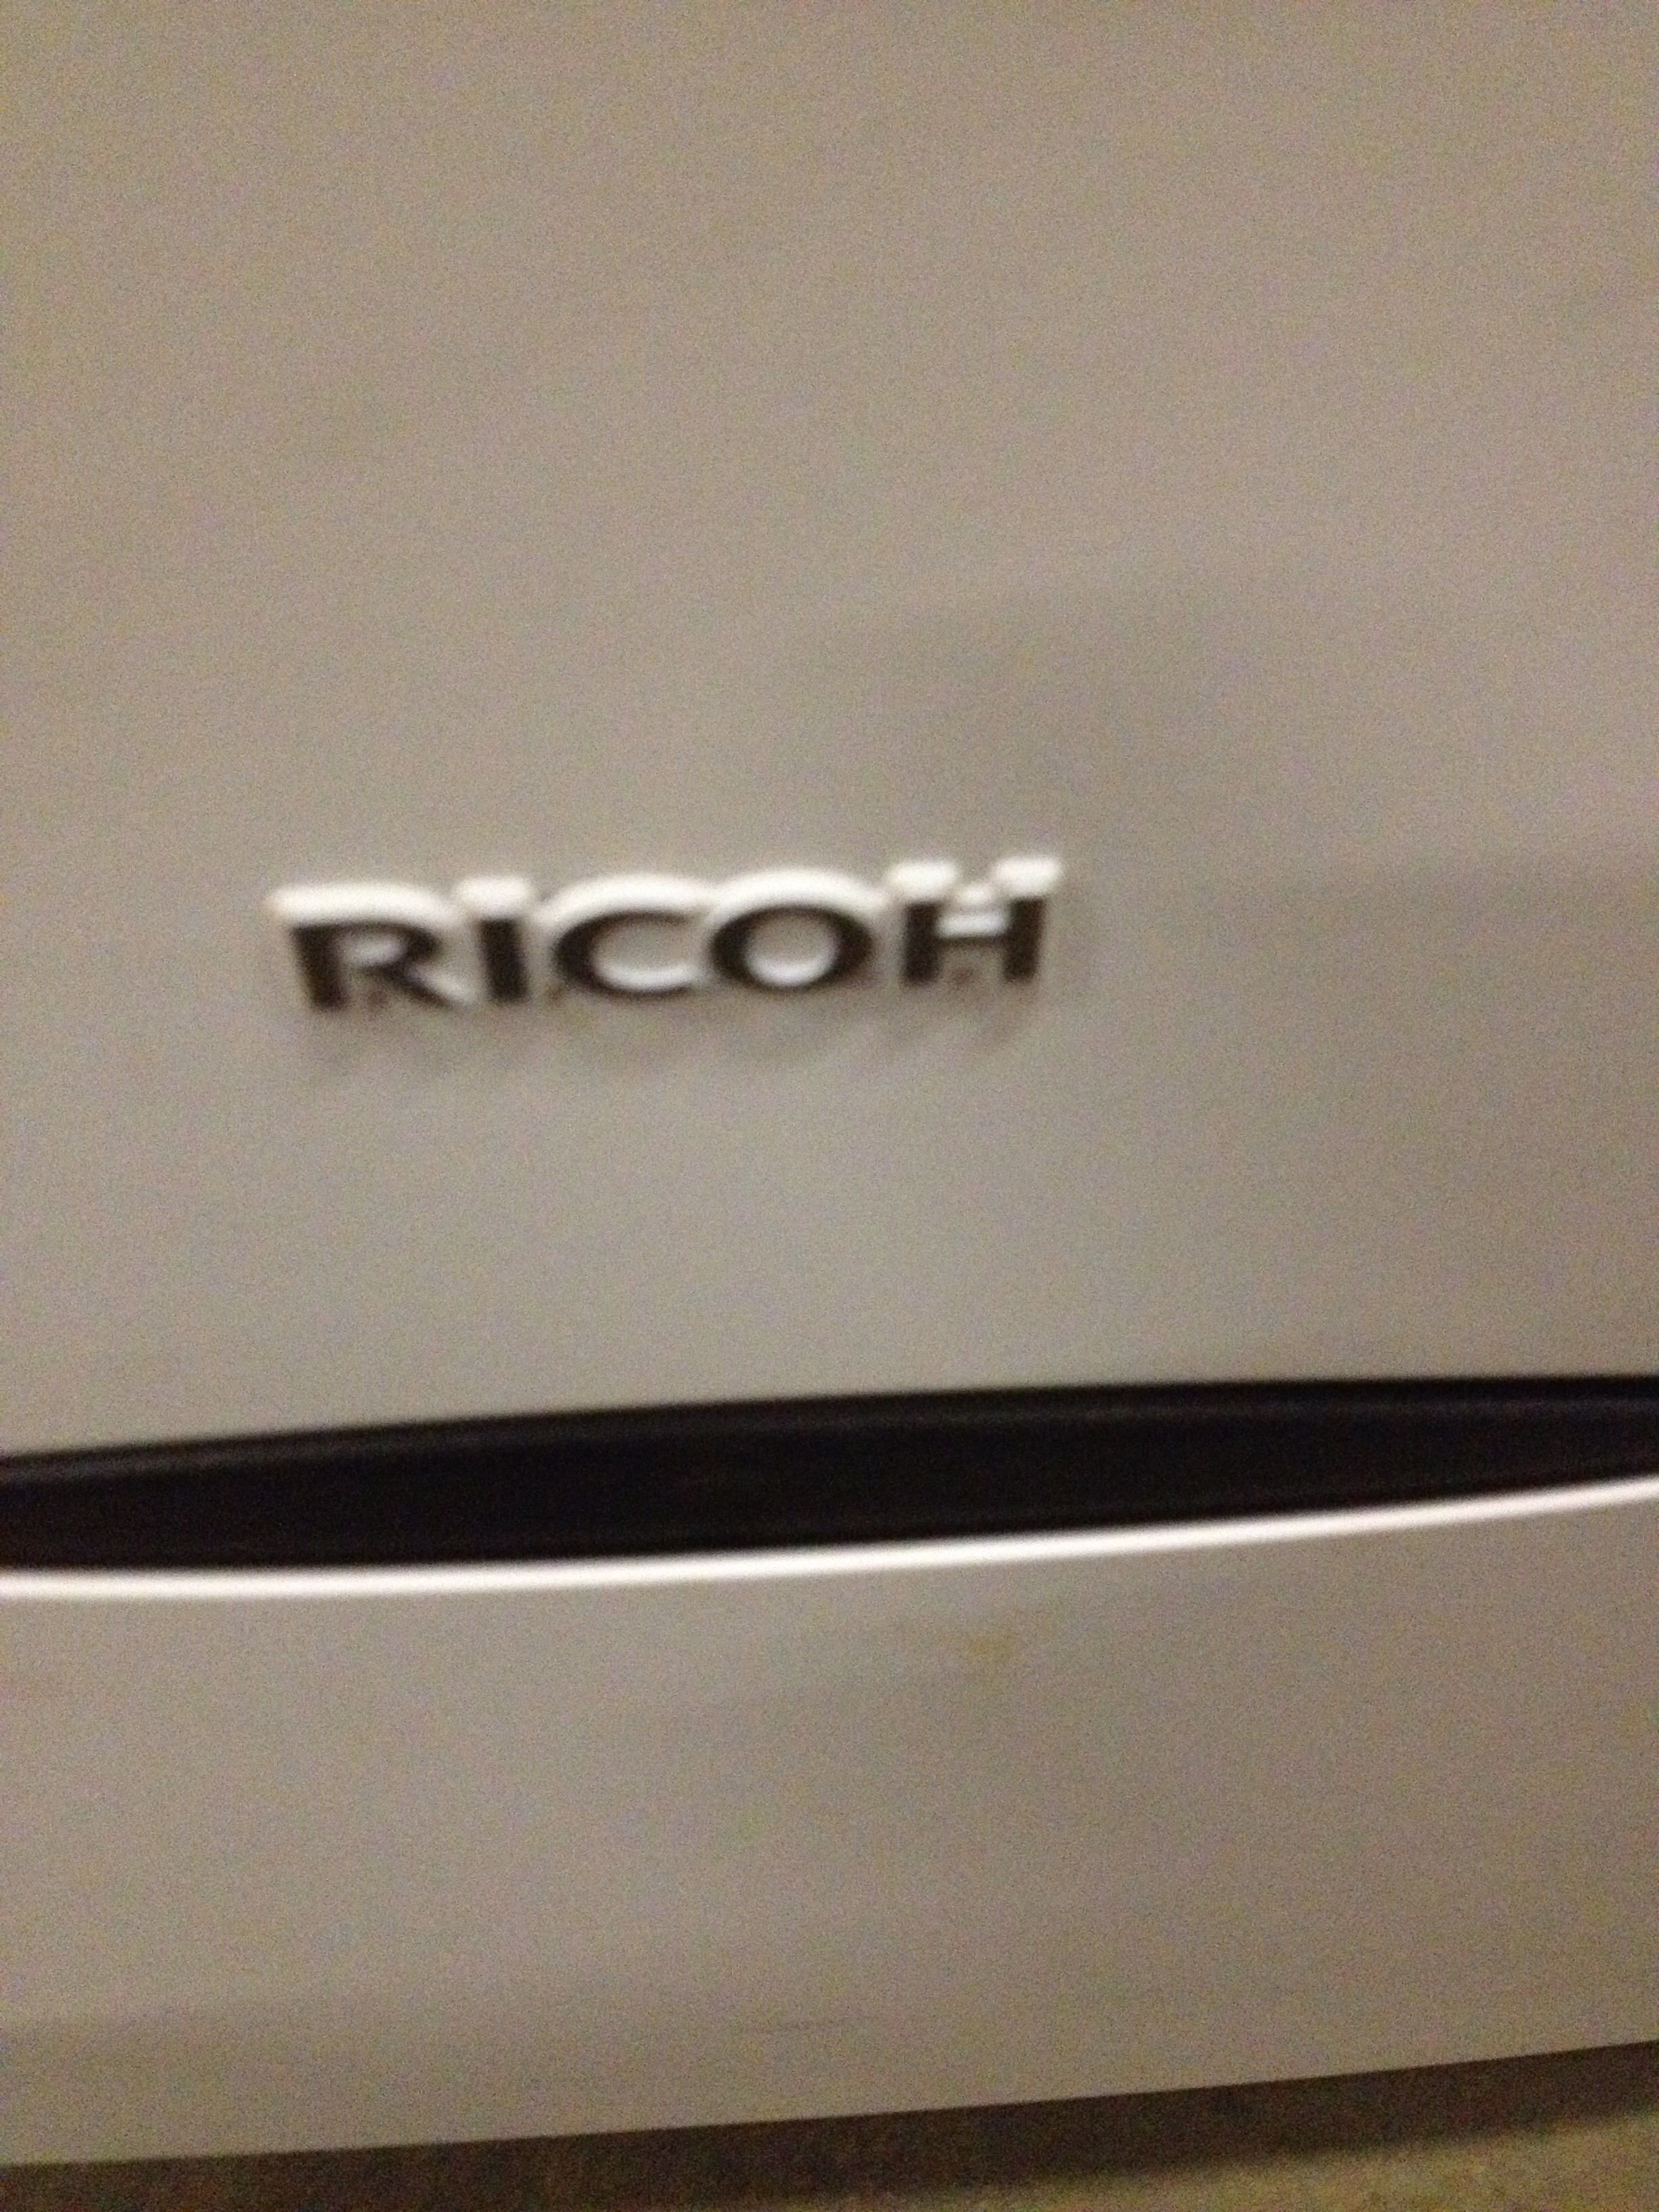 Ricoh Printer - Aficio SP C430DN (White) - Image 3 of 7